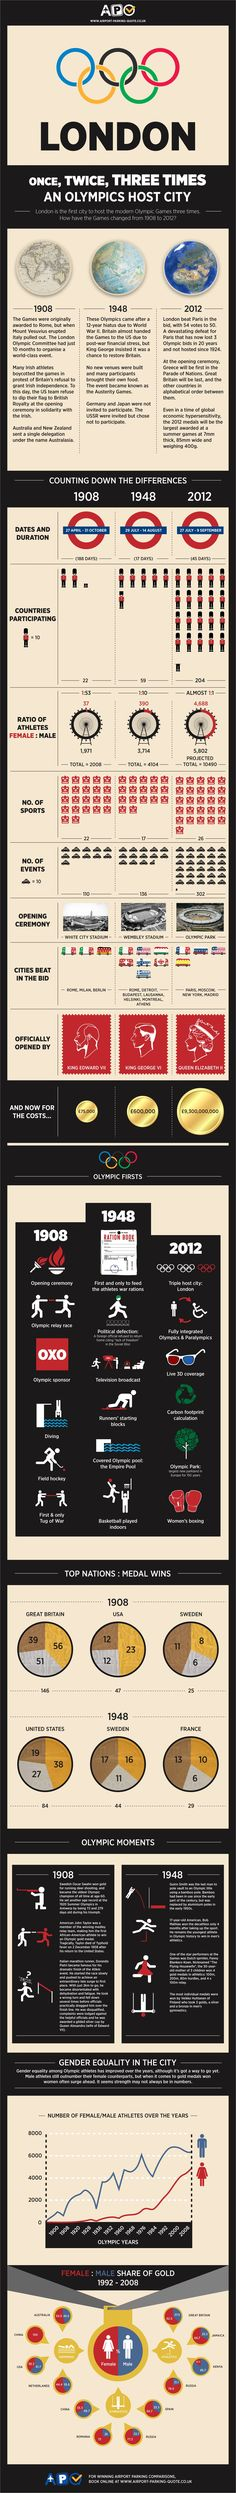 London 2012 #Olympic #Infographic